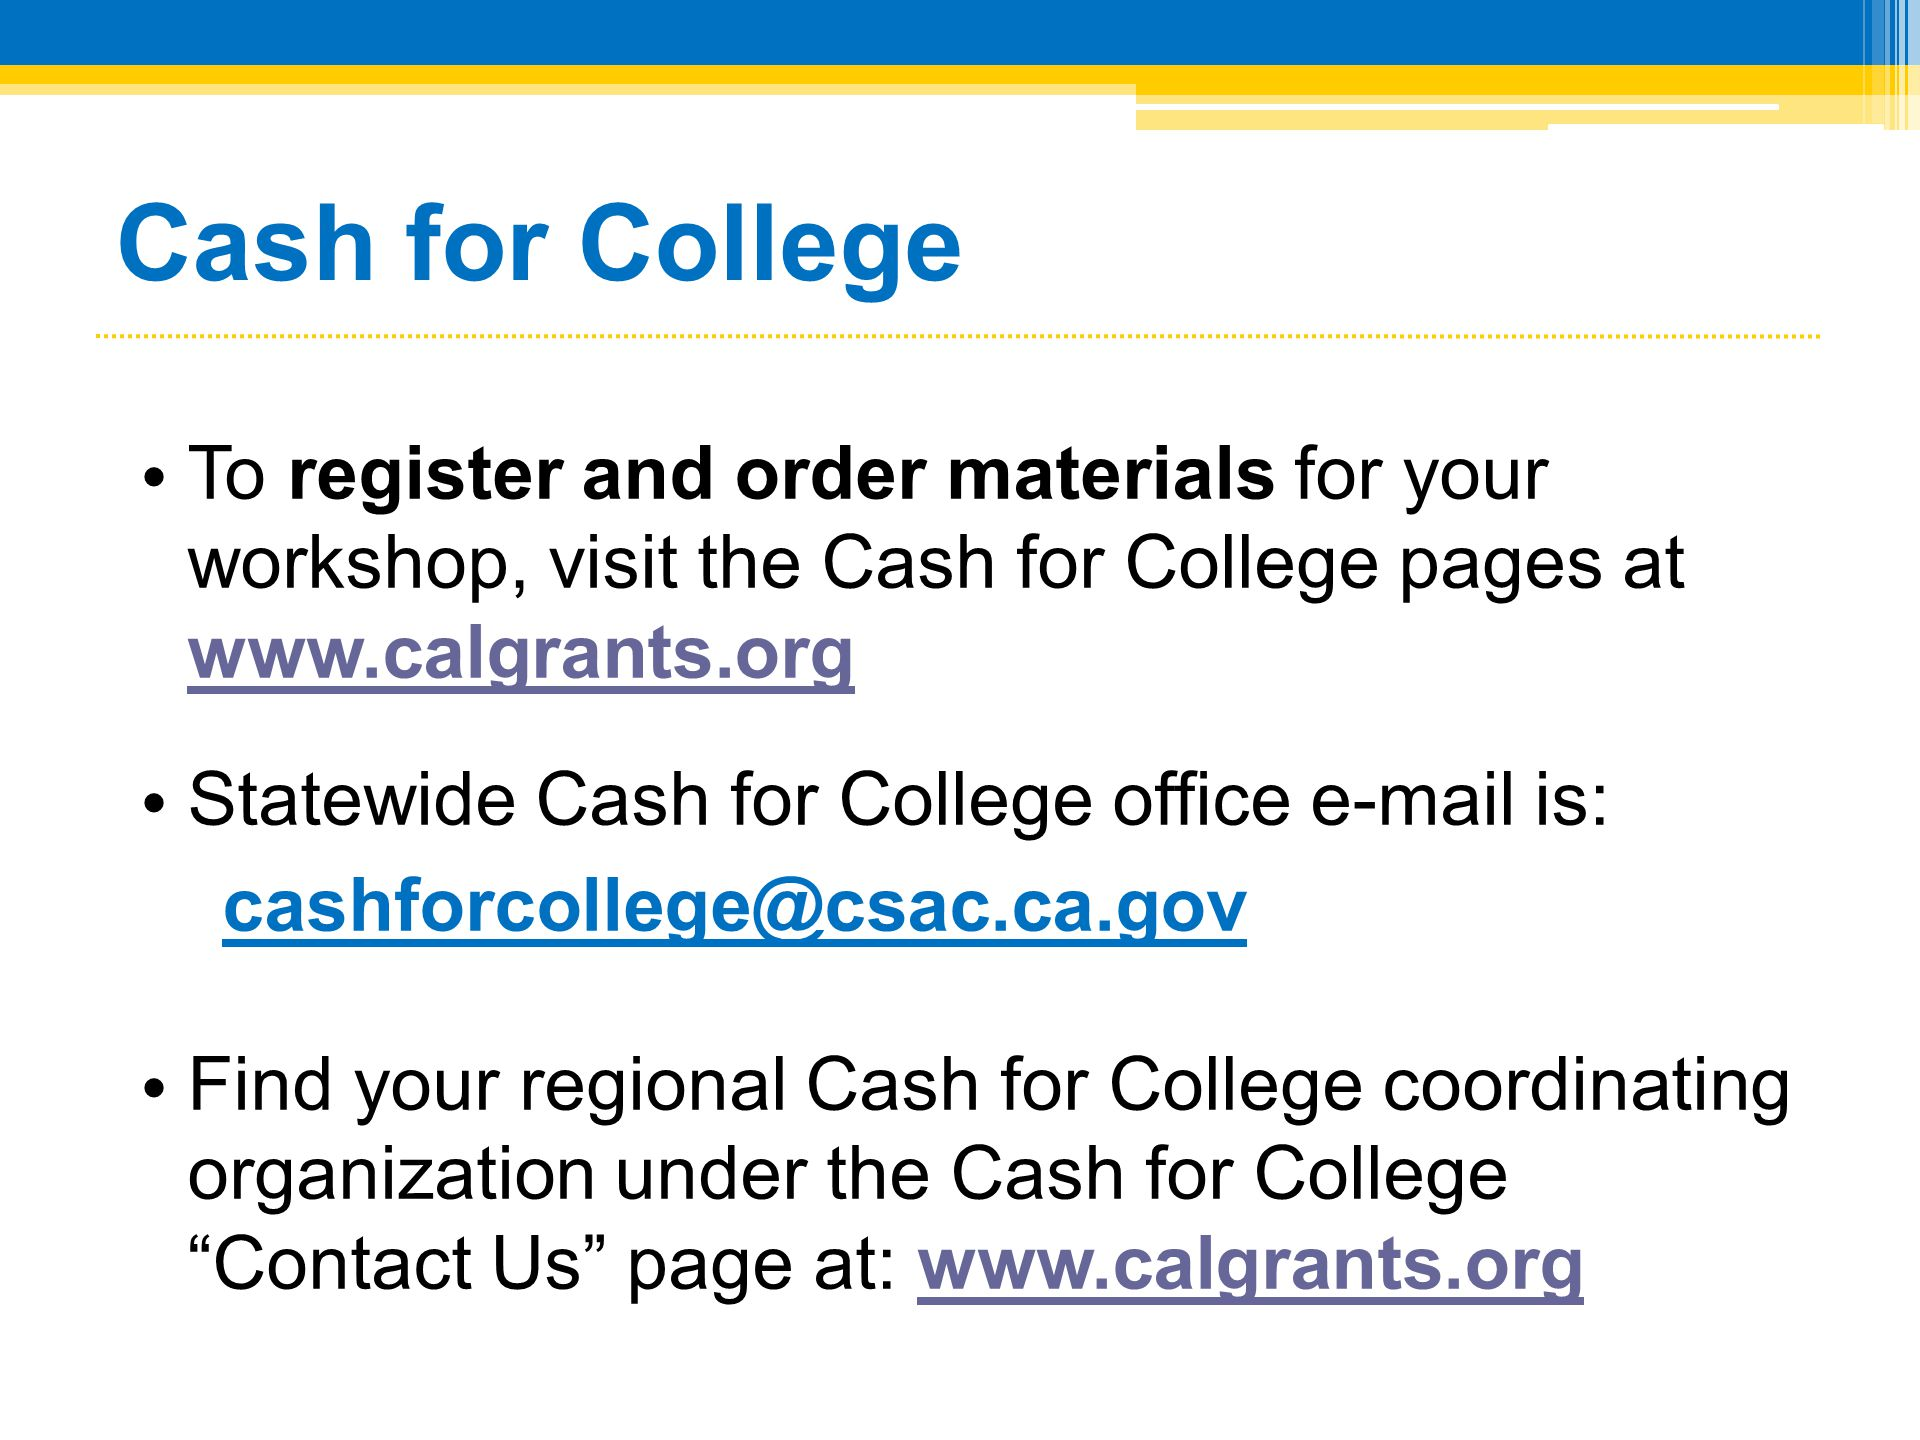 Cash for College To register and order materials for your workshop, visit the Cash for College pages at www.calgrants.org.